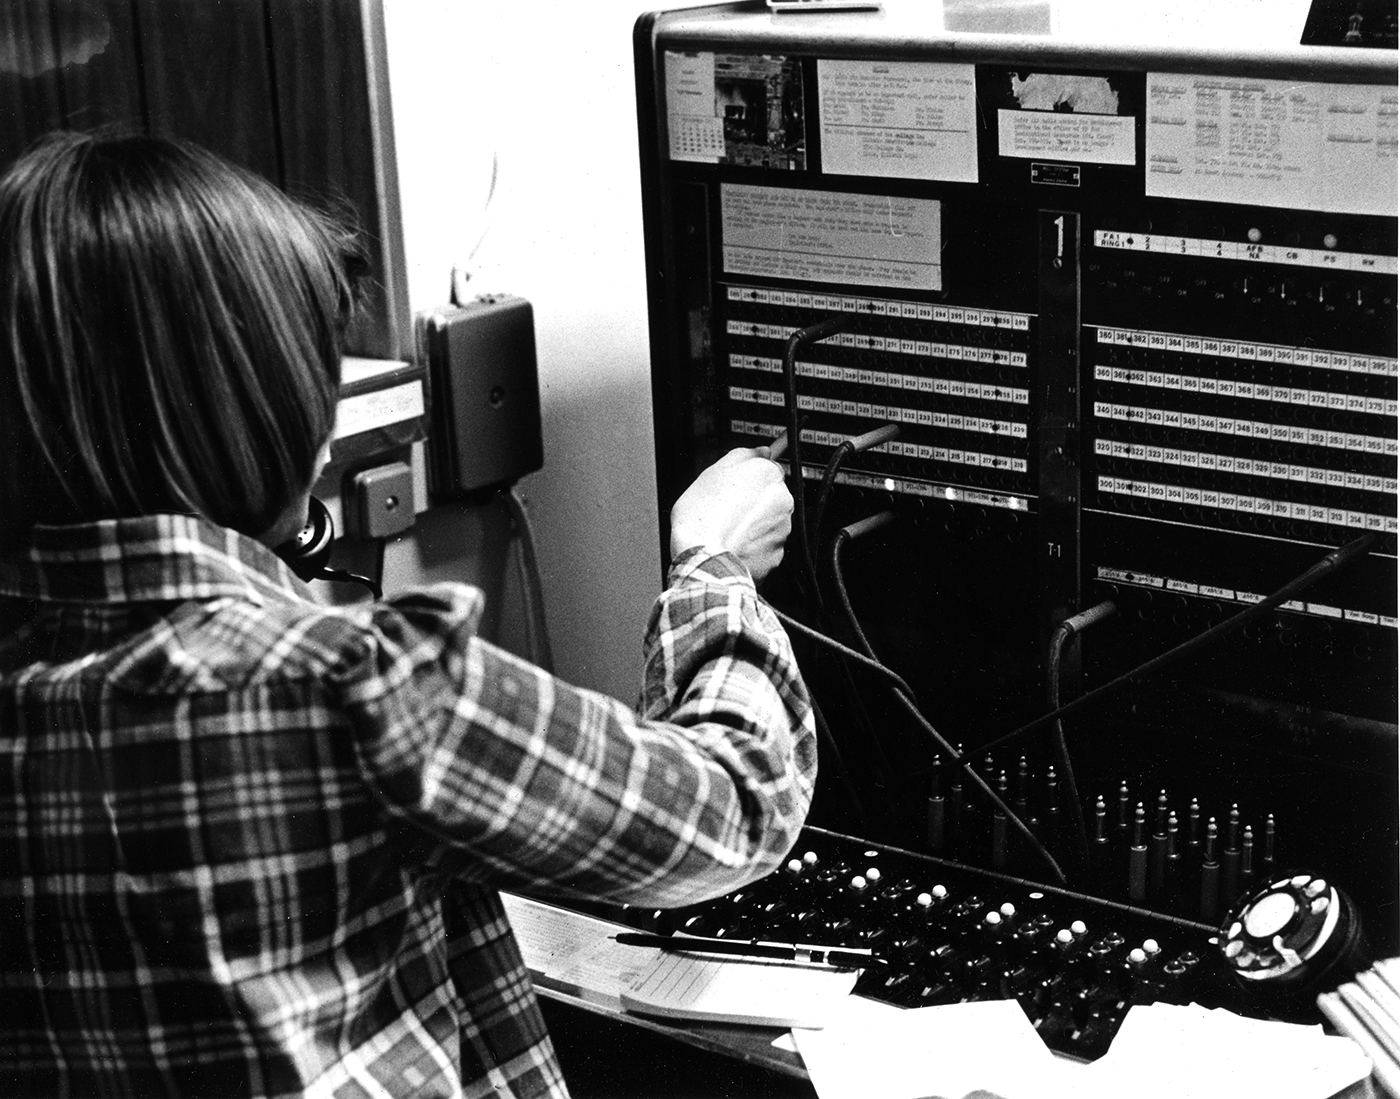 Unknown Switchboard Operator, 1974, Benedictine University Archives, Benedictine University Library (CC BY-NC 2.0 licensed). https://www.flickr.com/photos/benedictineuniversity/6328897141/